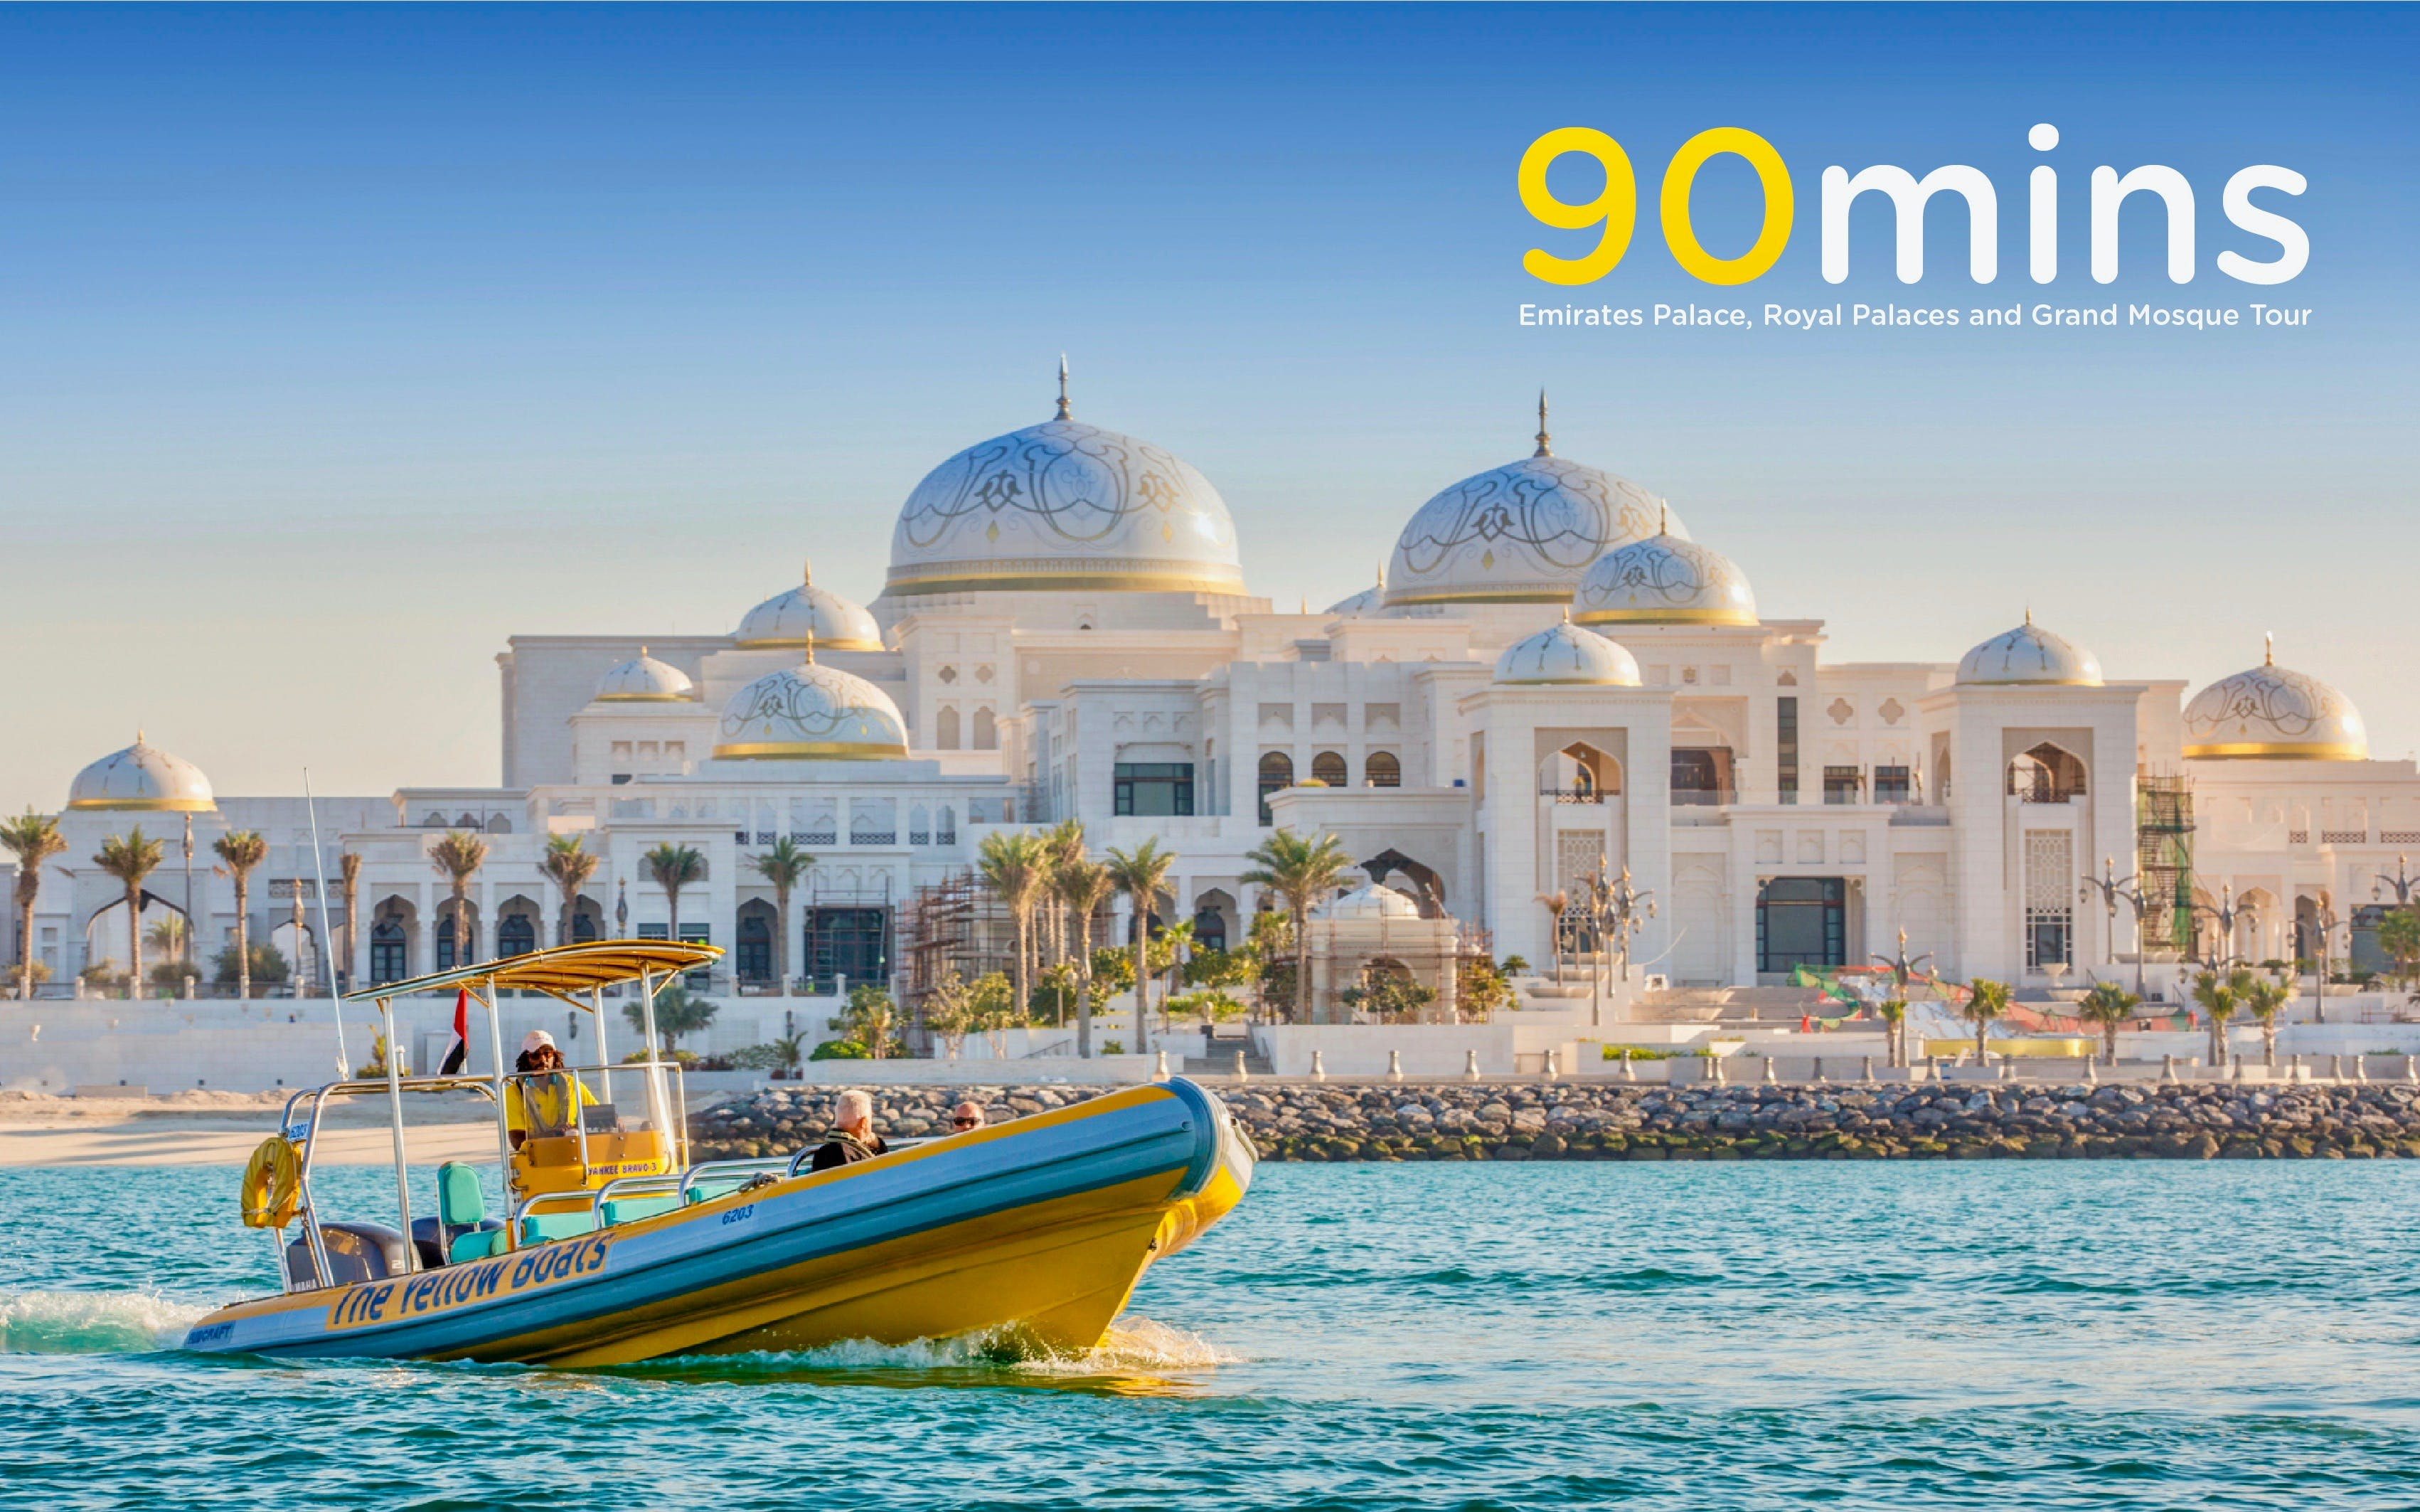 90 minutes sheikh zayed grand mosque tour by the yellow boats-1